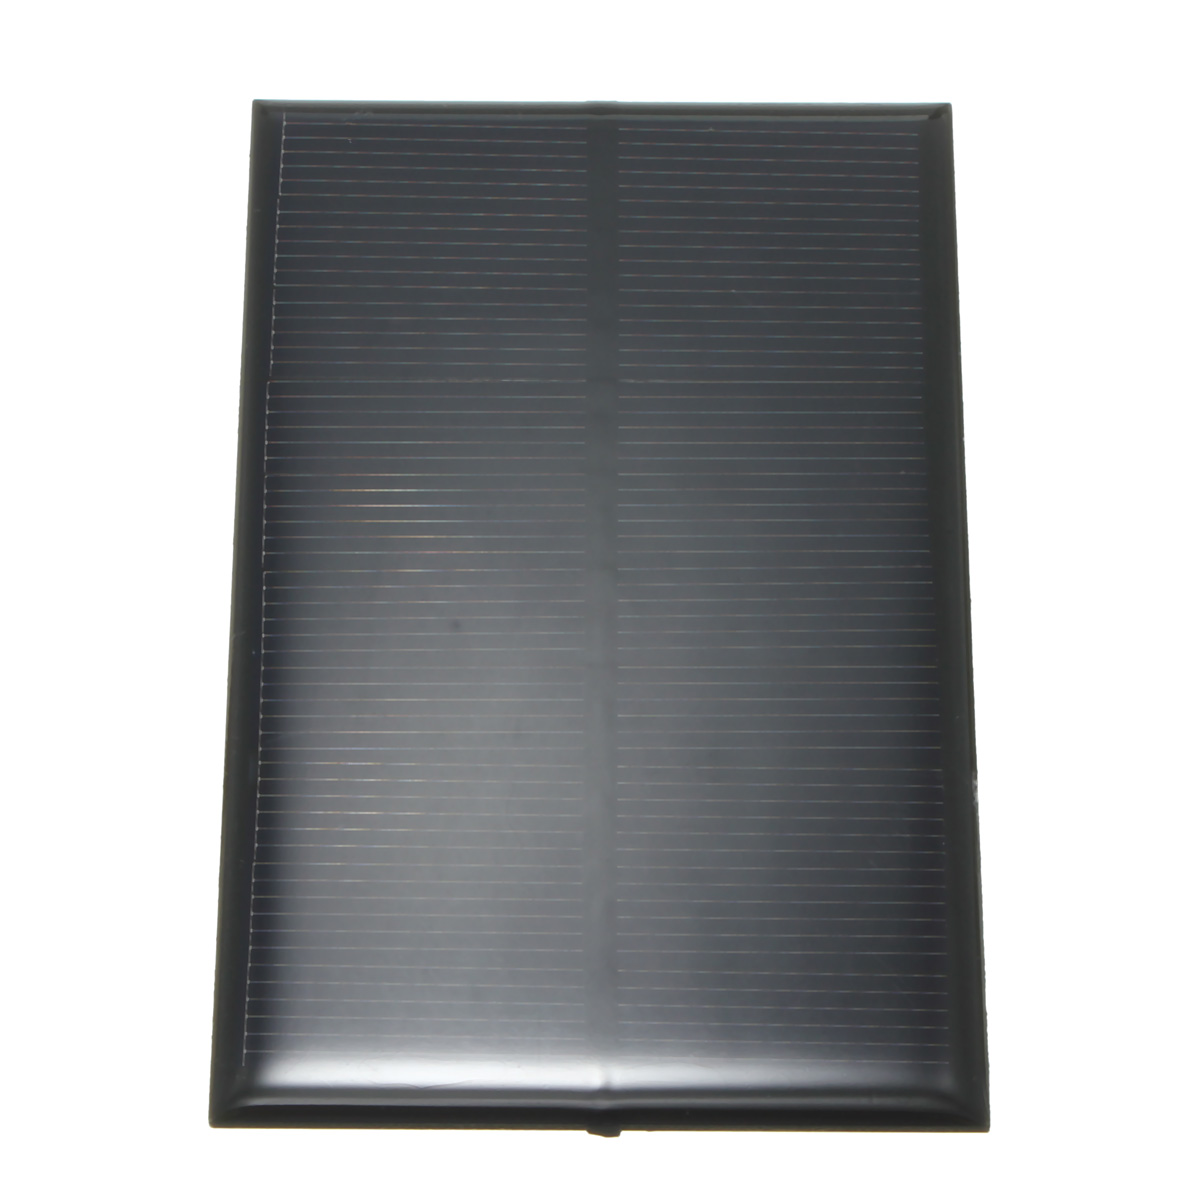 5V 1.25W 250mA Monocrystalline Silicon Epoxy Solar Panels Module kits Mini Solar Cells For Charging Cellphone Battery 110x70mm(China (Mainland))